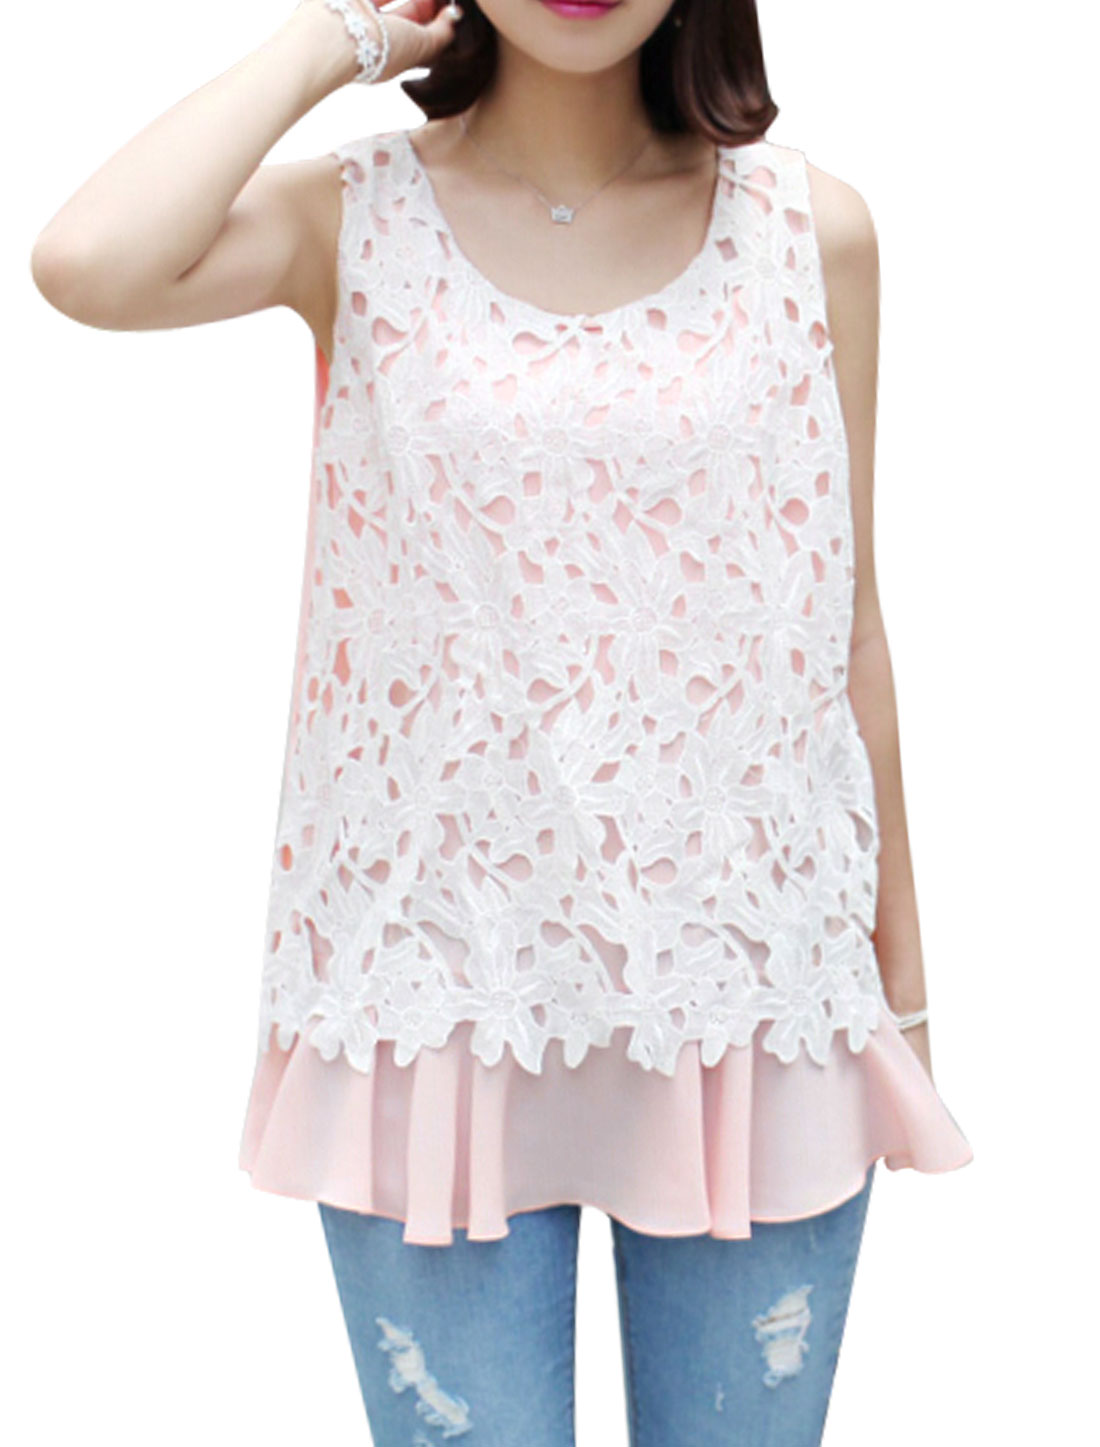 Women Round Neck Sleeveless Crochet Panel Casual Chiffon Tops Pale Pink XS